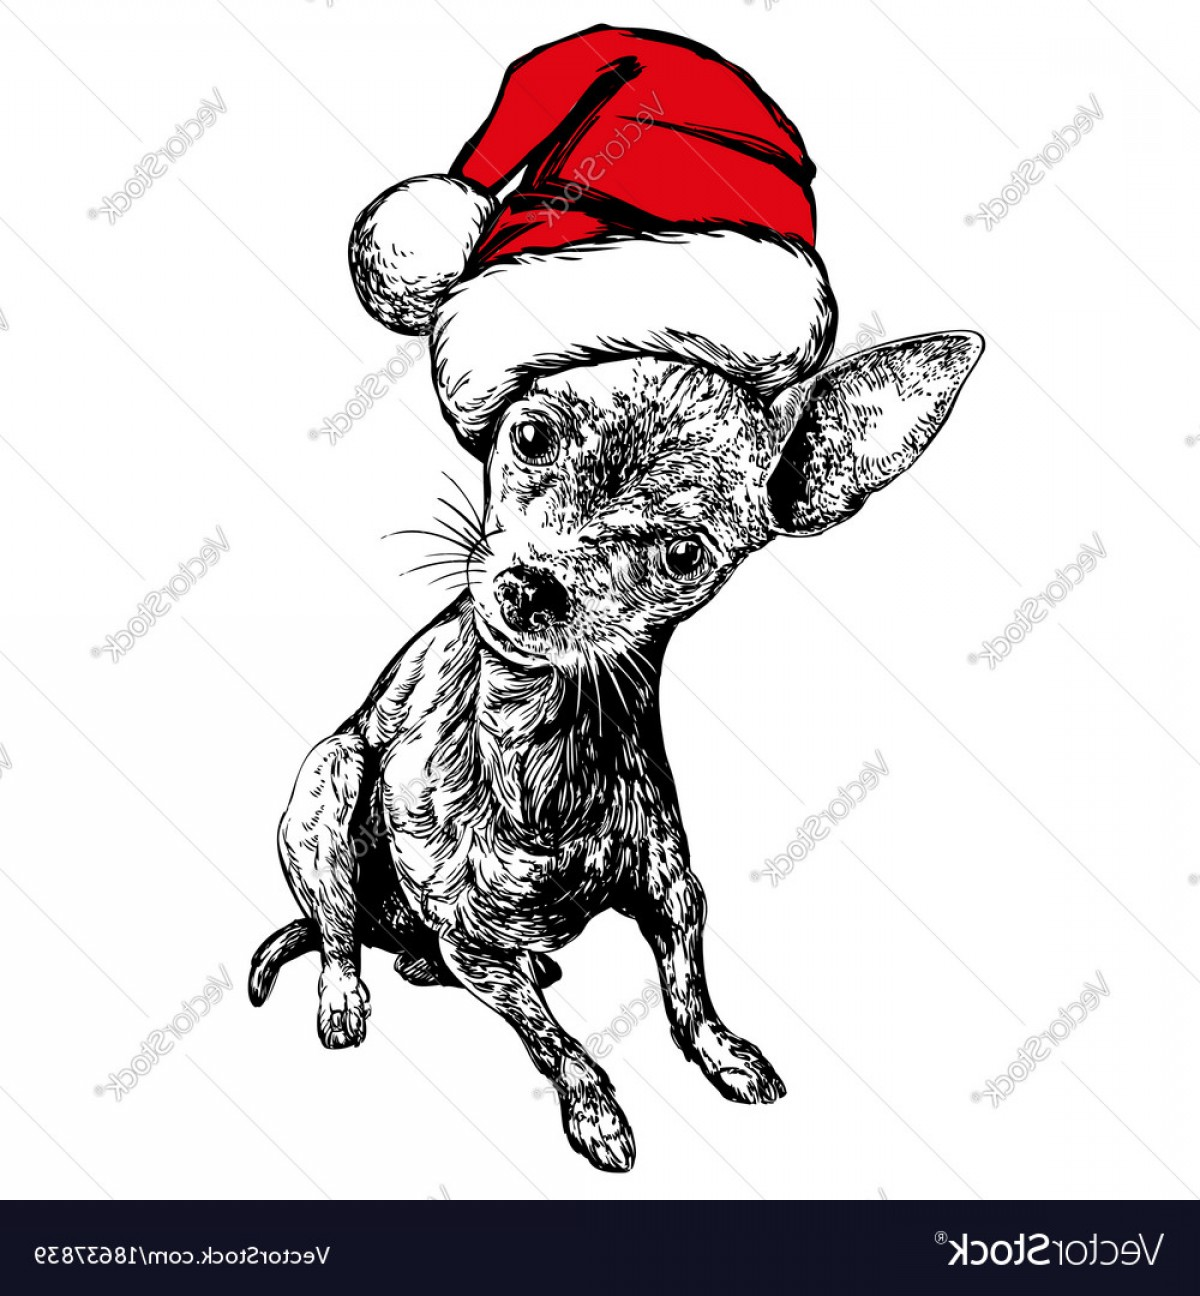 Stocking Hat Vector: Elegant Dog In Santa Stocking Hat Santa Claus Christmas Vector